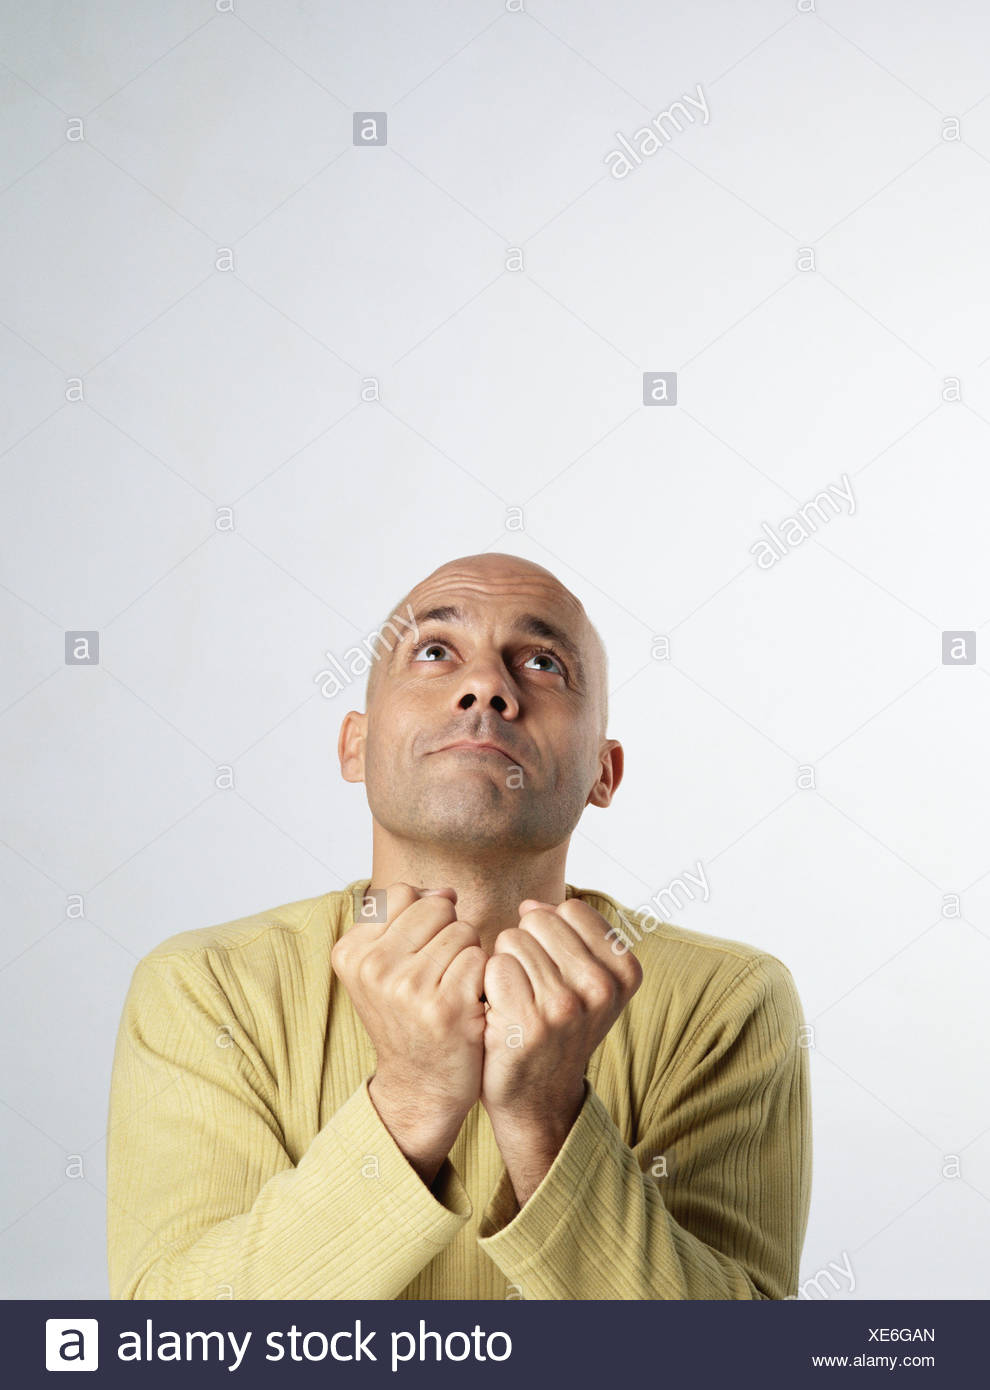 Man looking up, holding fists togther in front of him - Stock Image